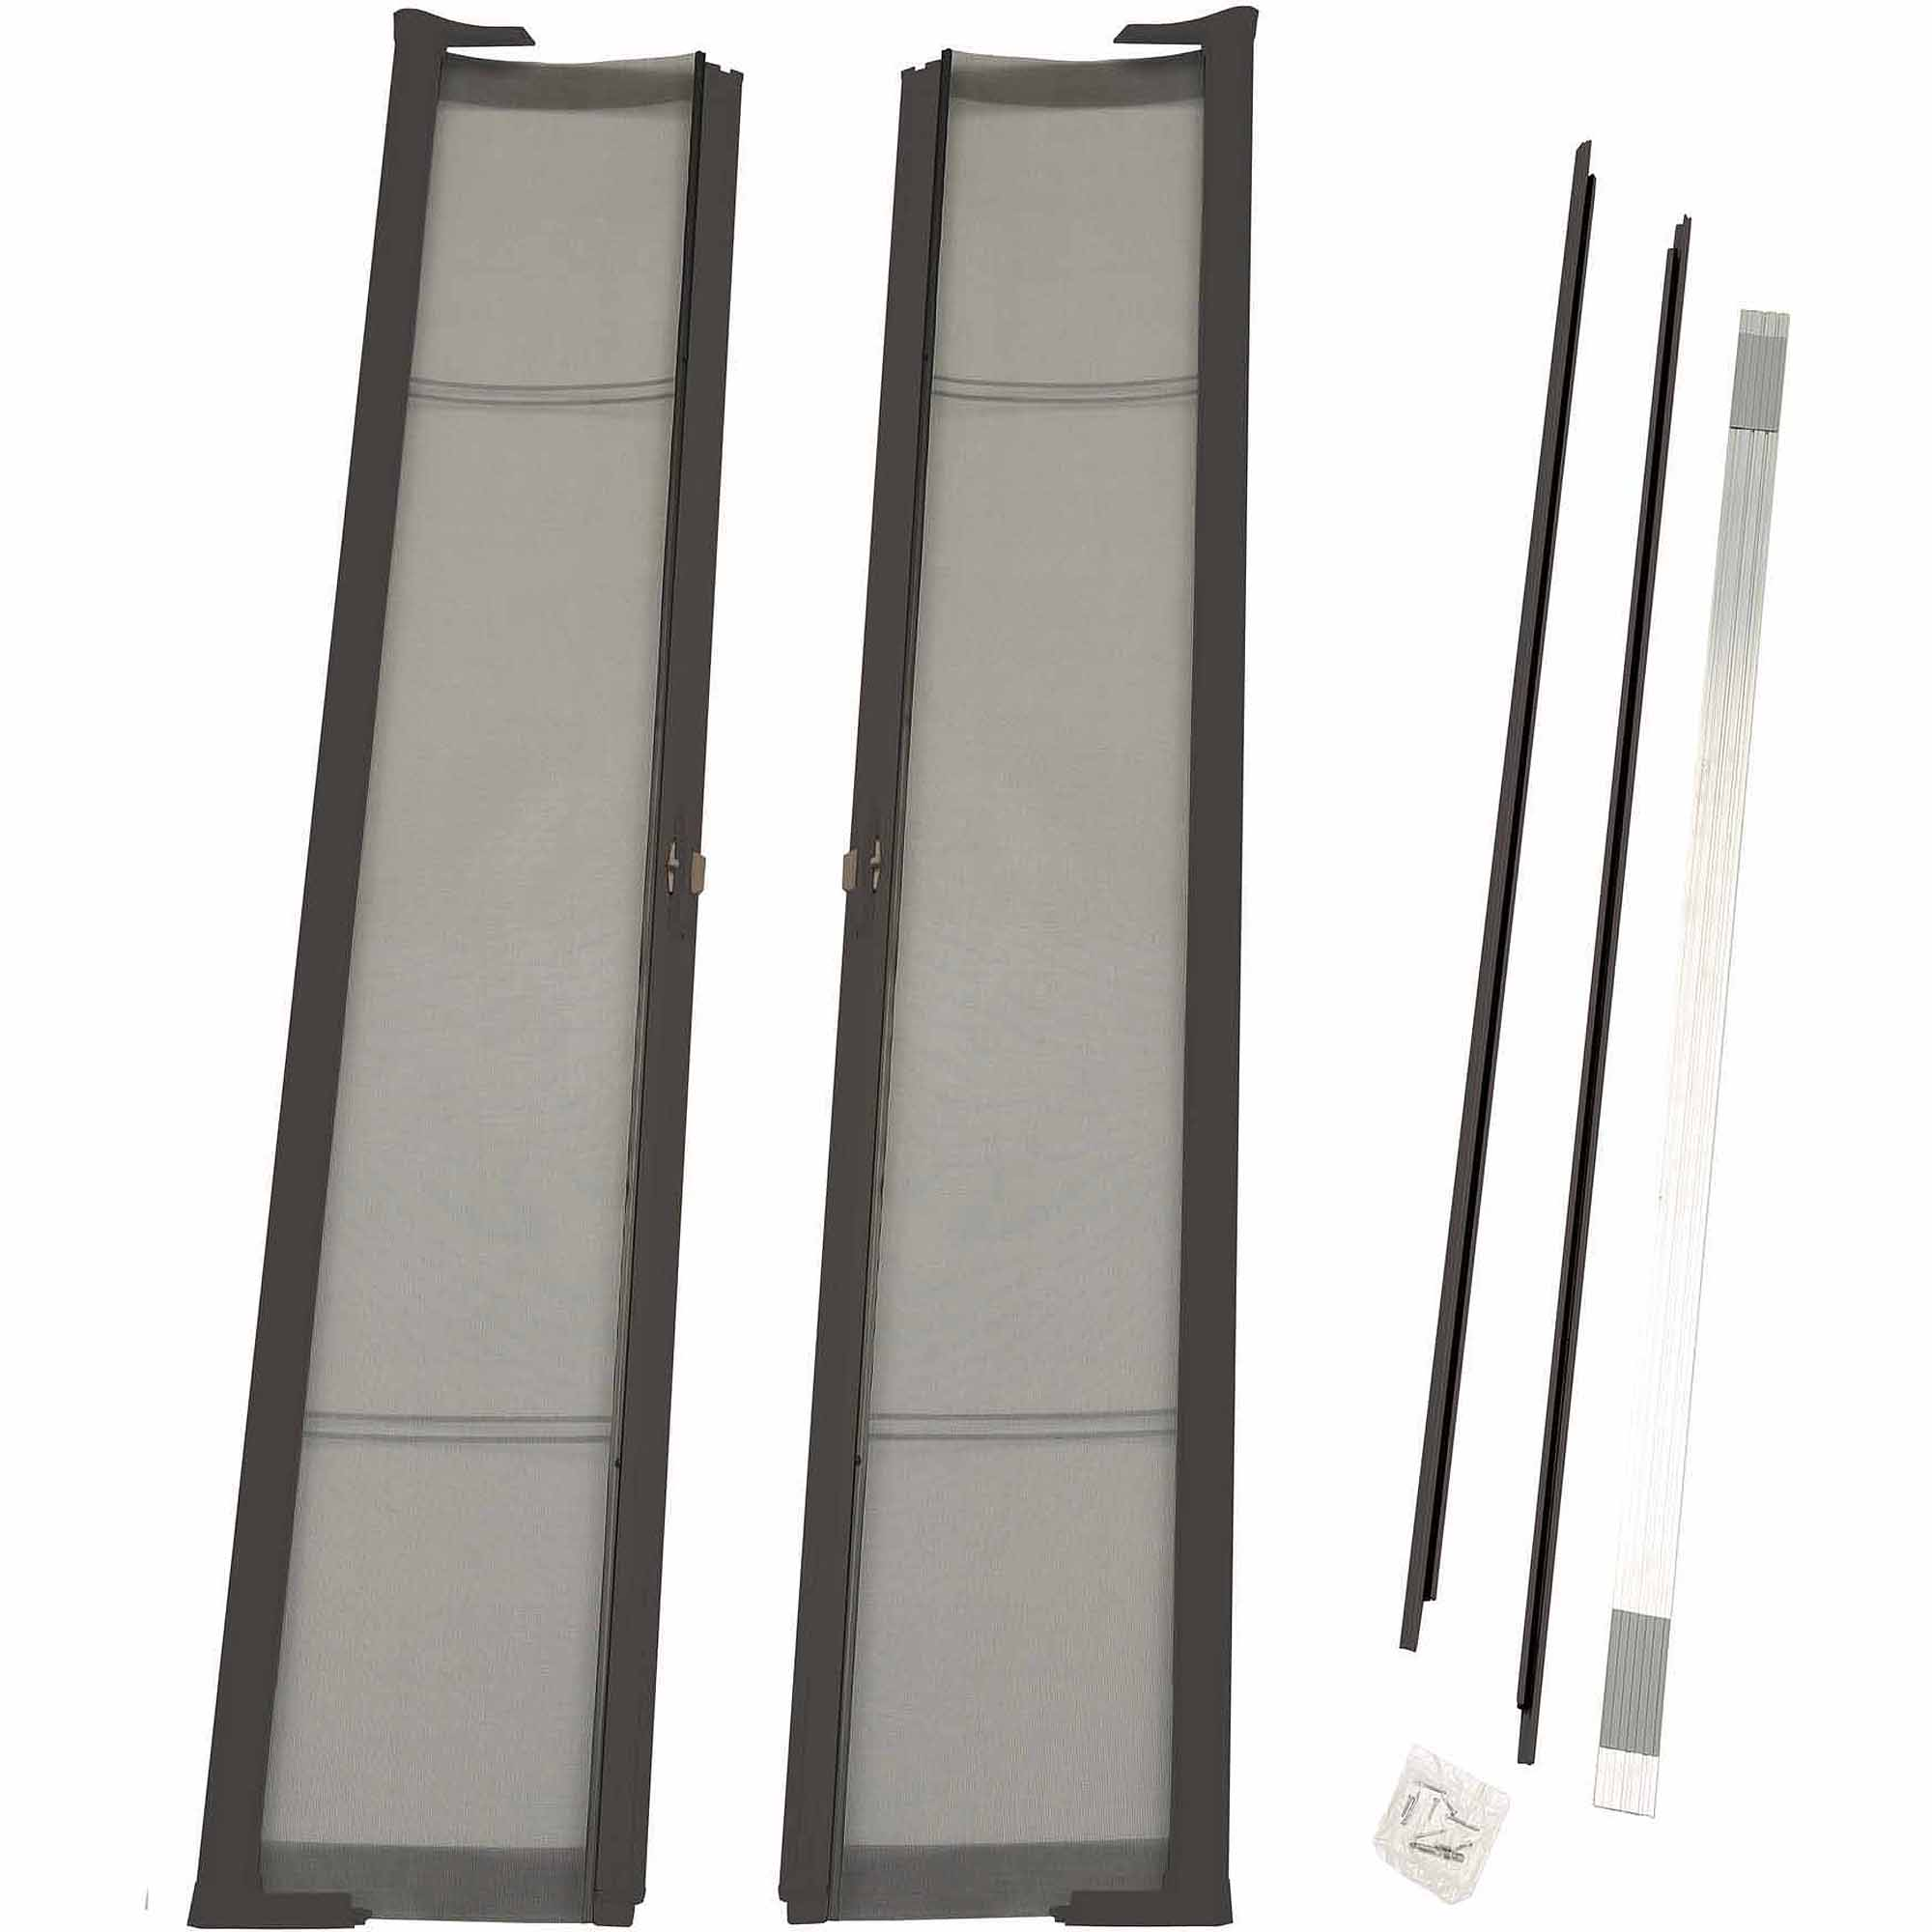 "ODL Brisa Bronze Standard Double Door Single Pack Retractable Screen for 80"" Inswing/Outswing Doors"